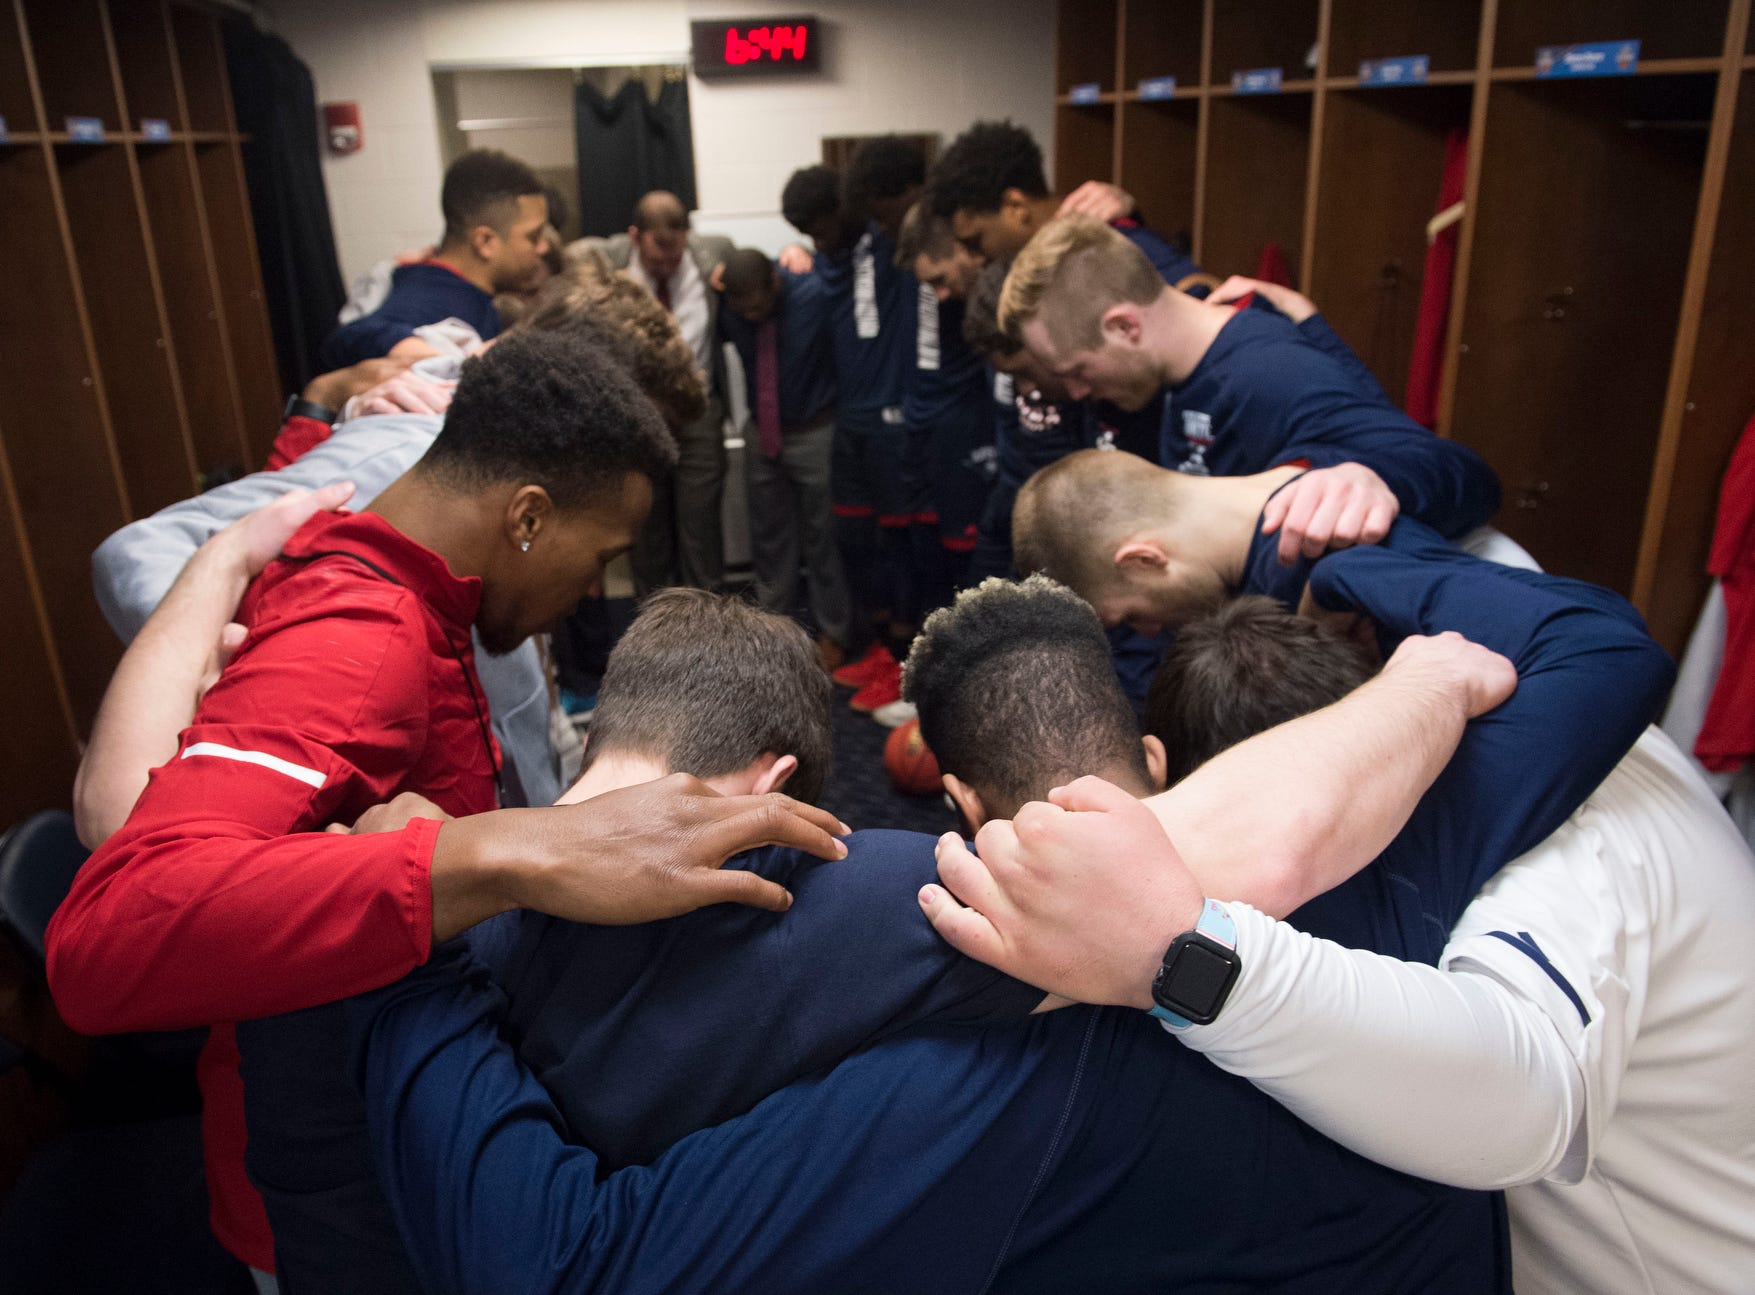 University of Southern Indiana Screaming Eagles gather in the locker room as they say the Lord's prayer before taking the court for the NCAA Men's Division II Quarterfinals at Ford Center in Evansville, Ind., Wednesday, March 27, 2019. USI defeated West Texas A&M, 94-84.